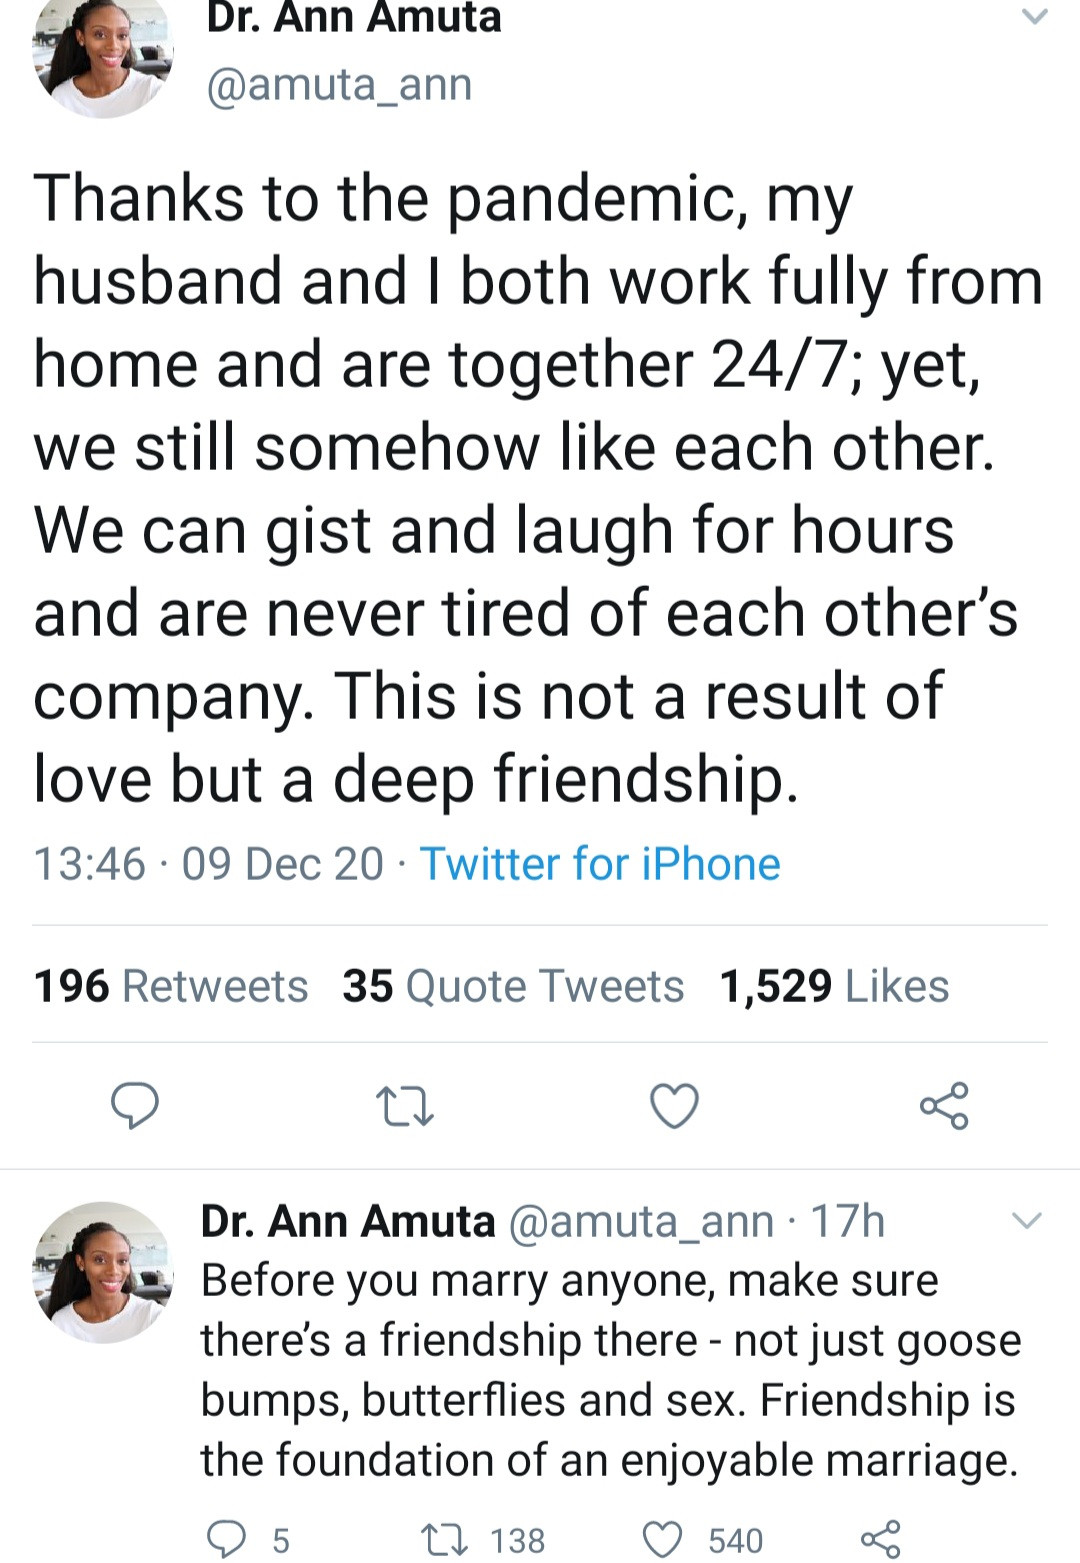 Assistant professor, Dr Ann Amuta reiterates the importance of friendship as the foundation for an enjoyable marriage